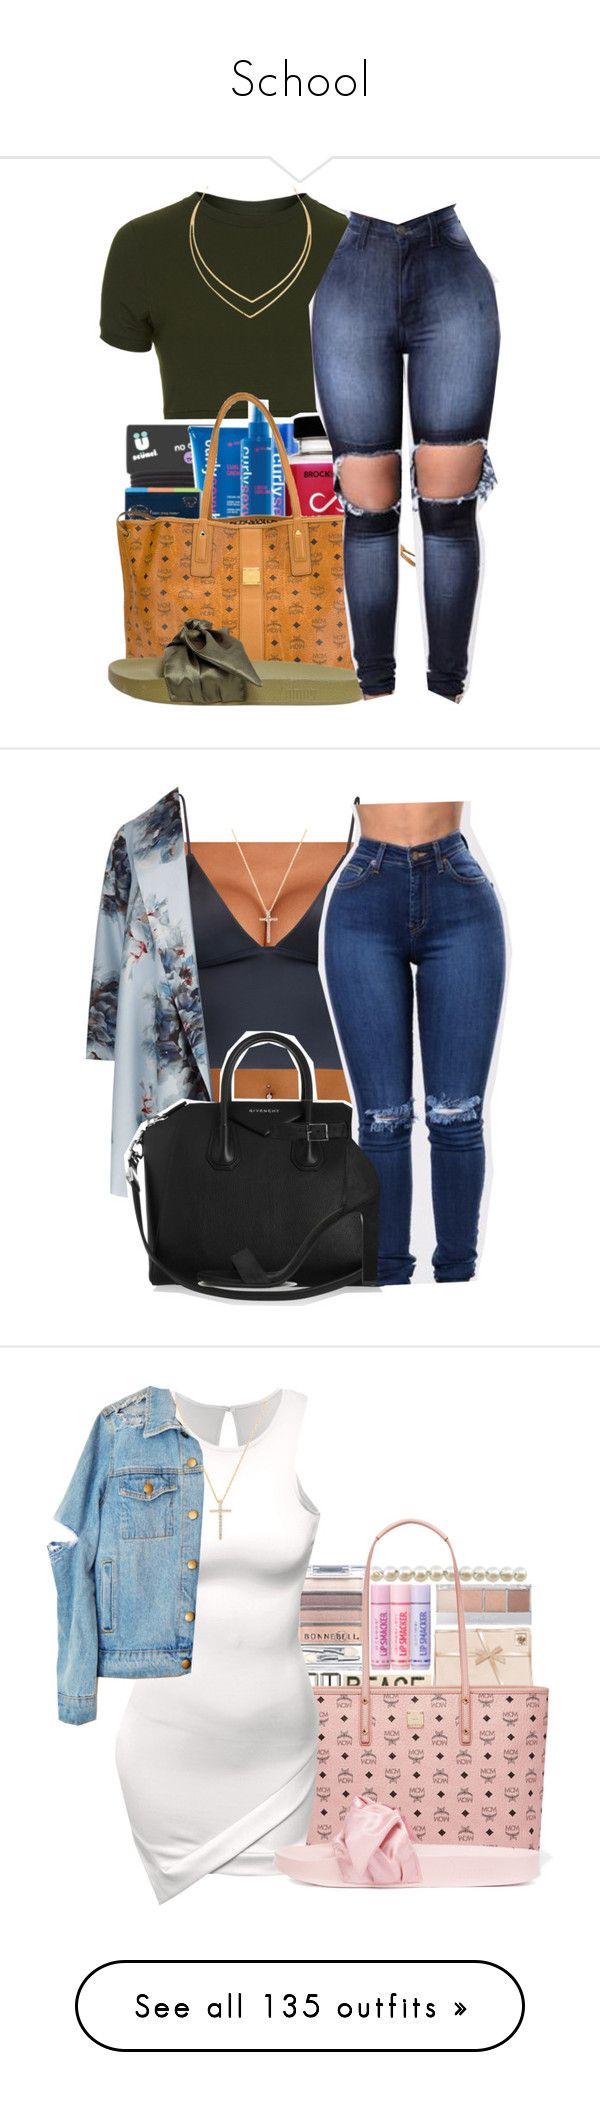 """""""School"""" by ashariah-singleto ❤ liked on Polyvore featuring Topshop, MCM, Puma, Lana, T By Alexander Wang, Marina Rinaldi, Givenchy, Yves Saint Laurent, Nephora and plus size clothing"""